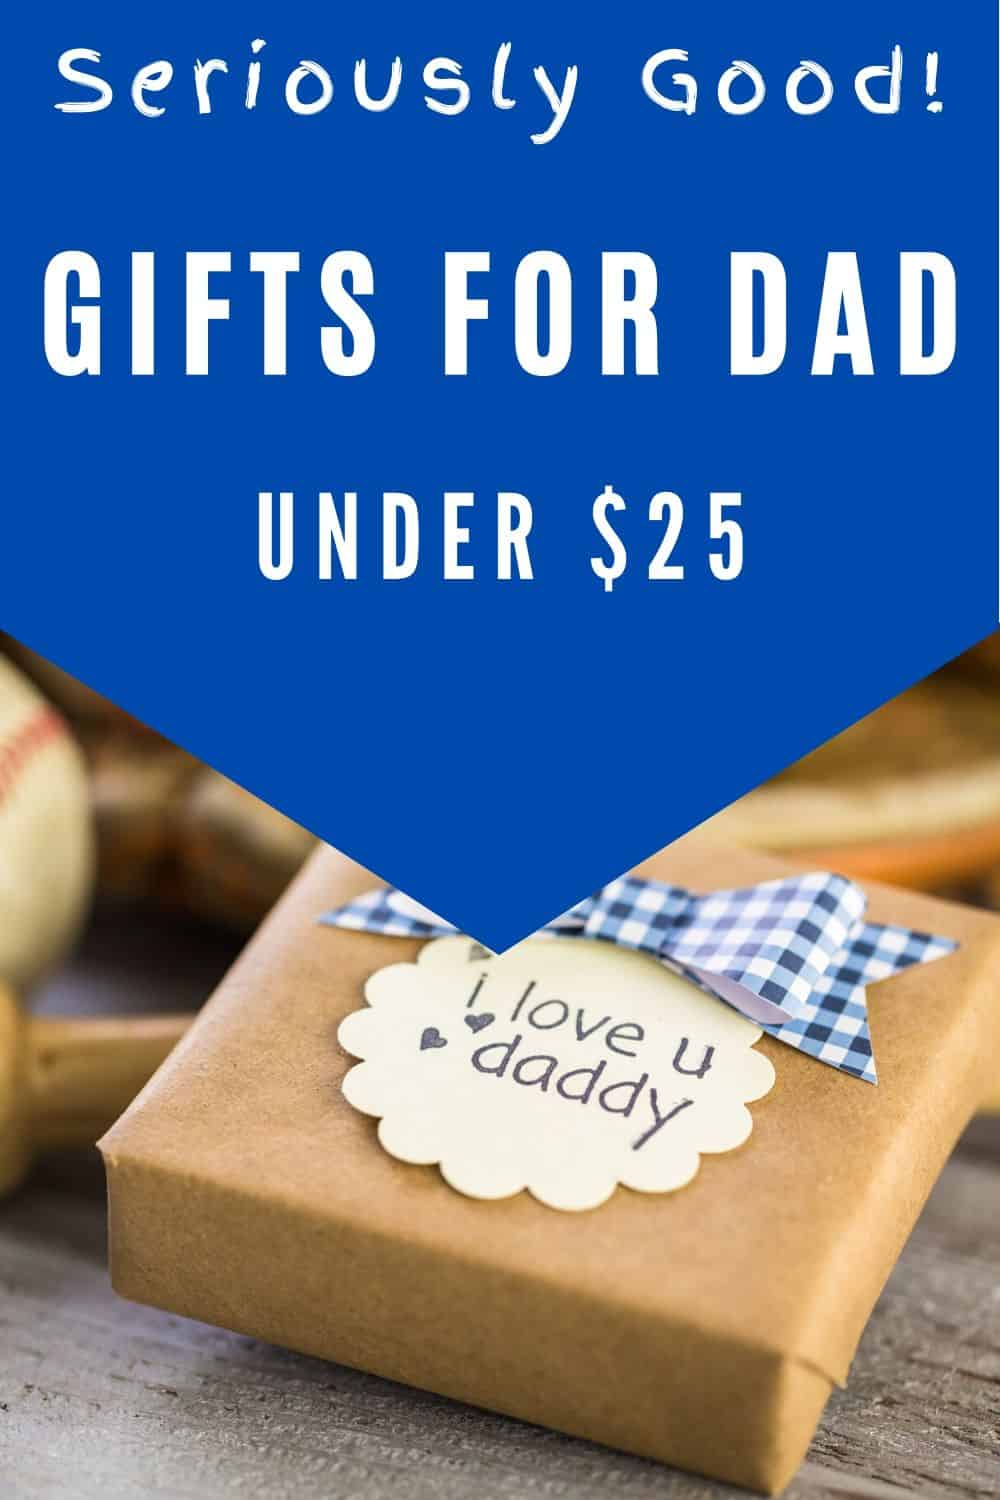 Gifts for Dad Under $25 - Seriously Good Budget Friendly Gifts for Dad